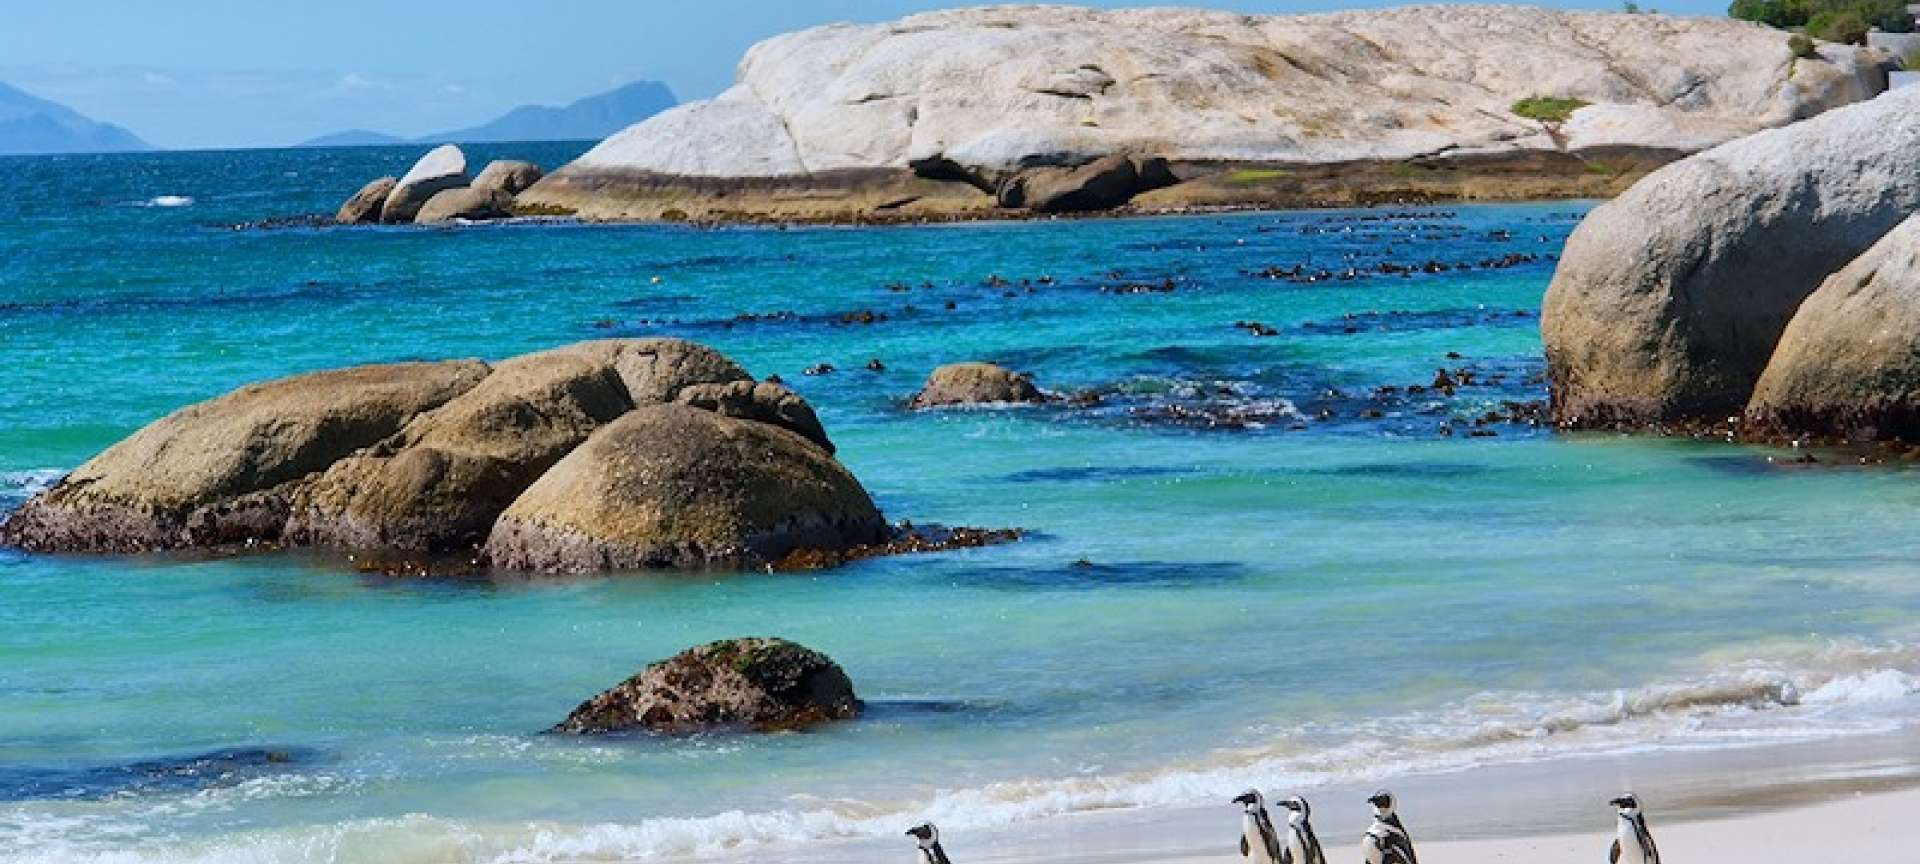 Beach holidays in South Africa - Africa Wildlife Safaris